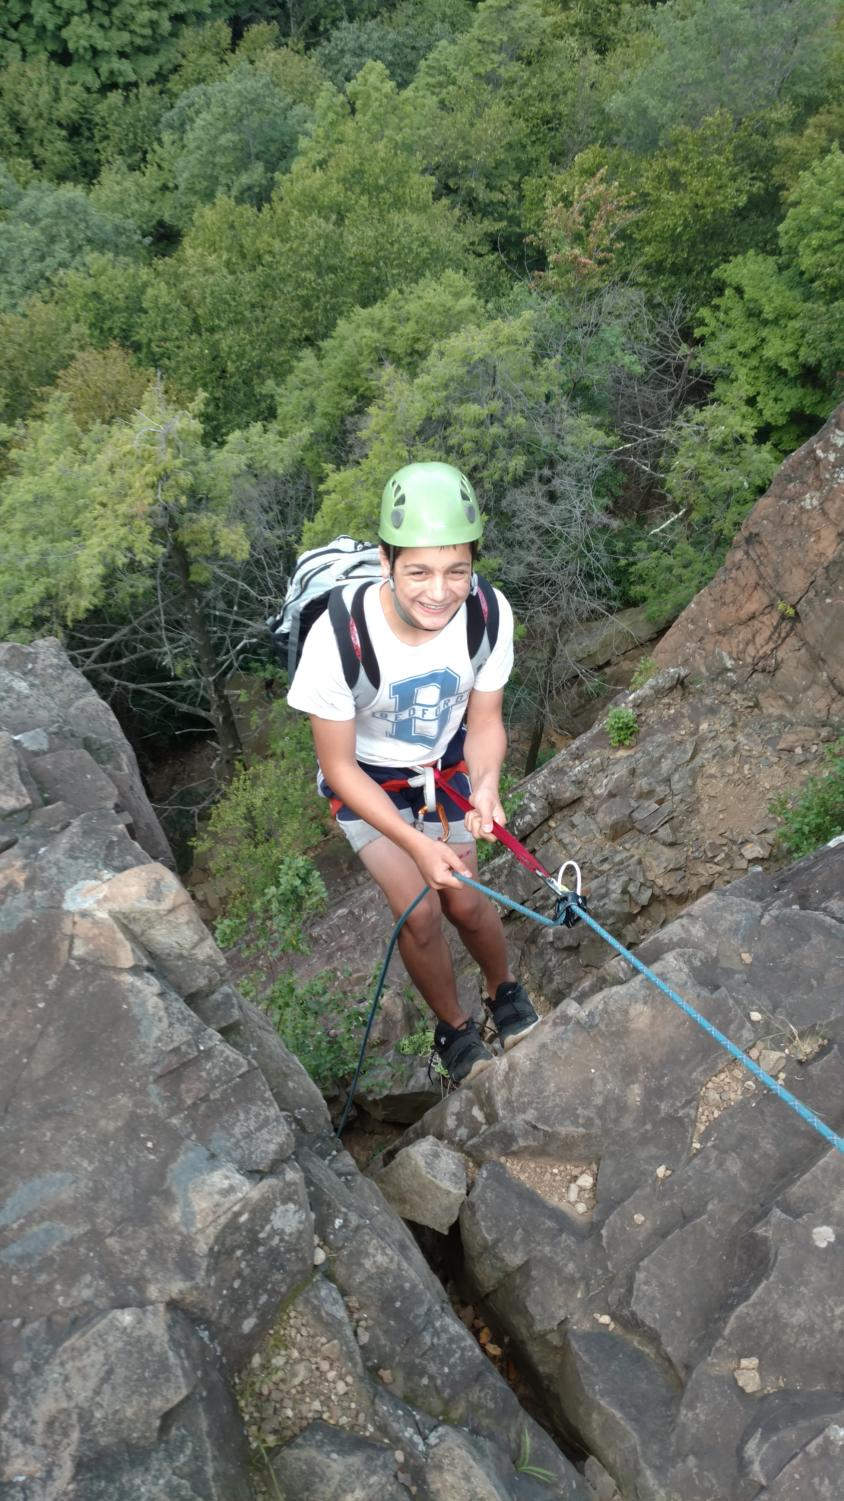 Above, an 8th grader repelling down a rock face in Kent, Connecticut.